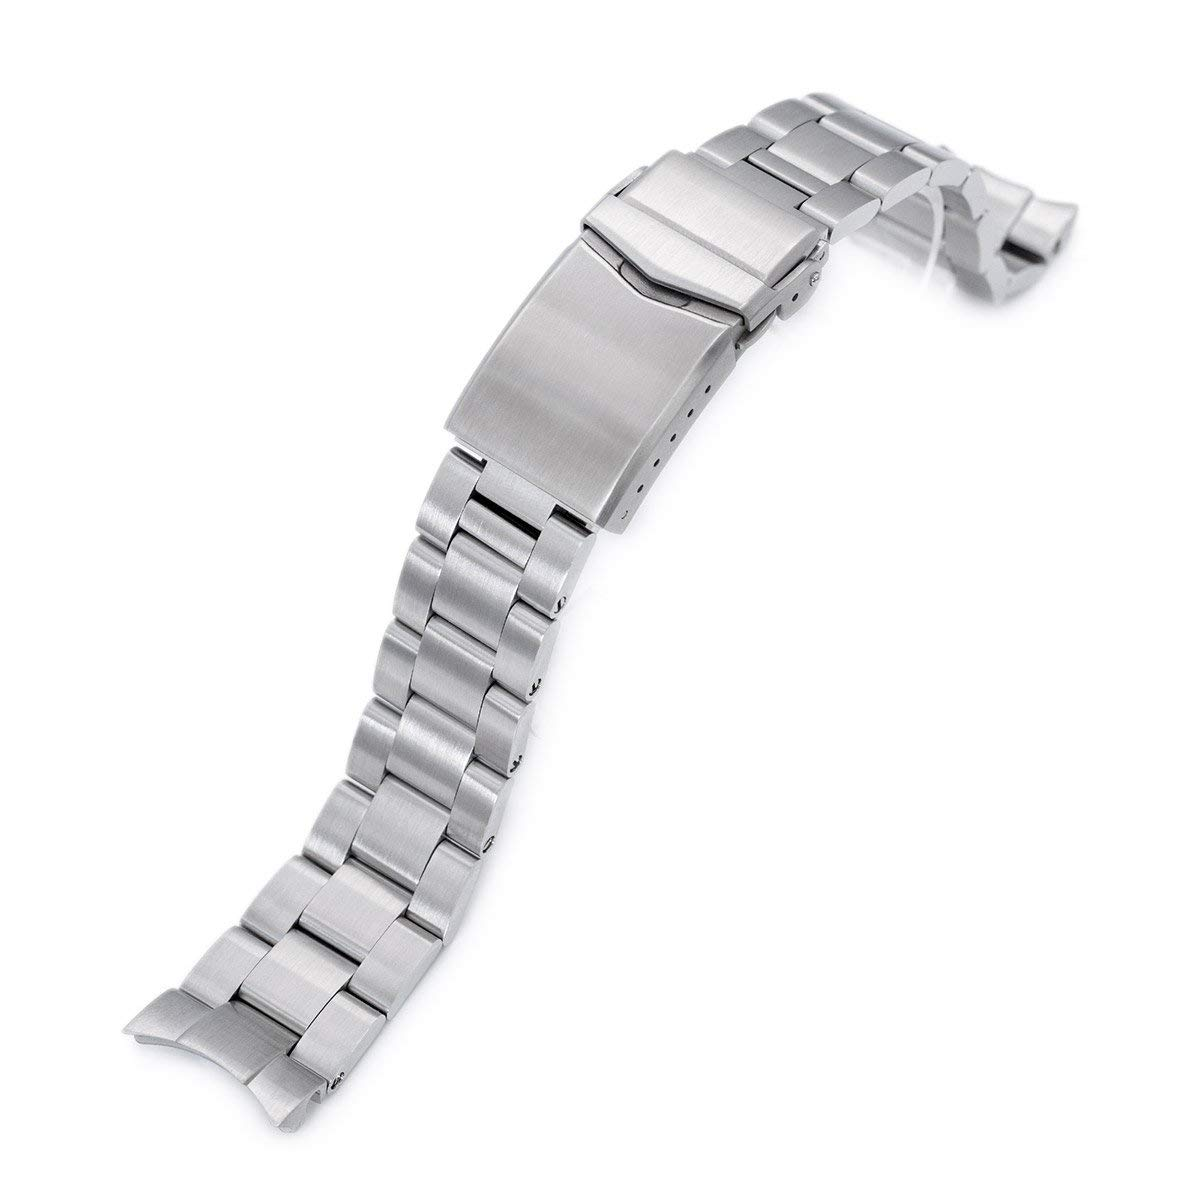 20mm Super 3D Oyster Watch Bracelet for Seiko Mechanical Automatic SARB033, Brushed